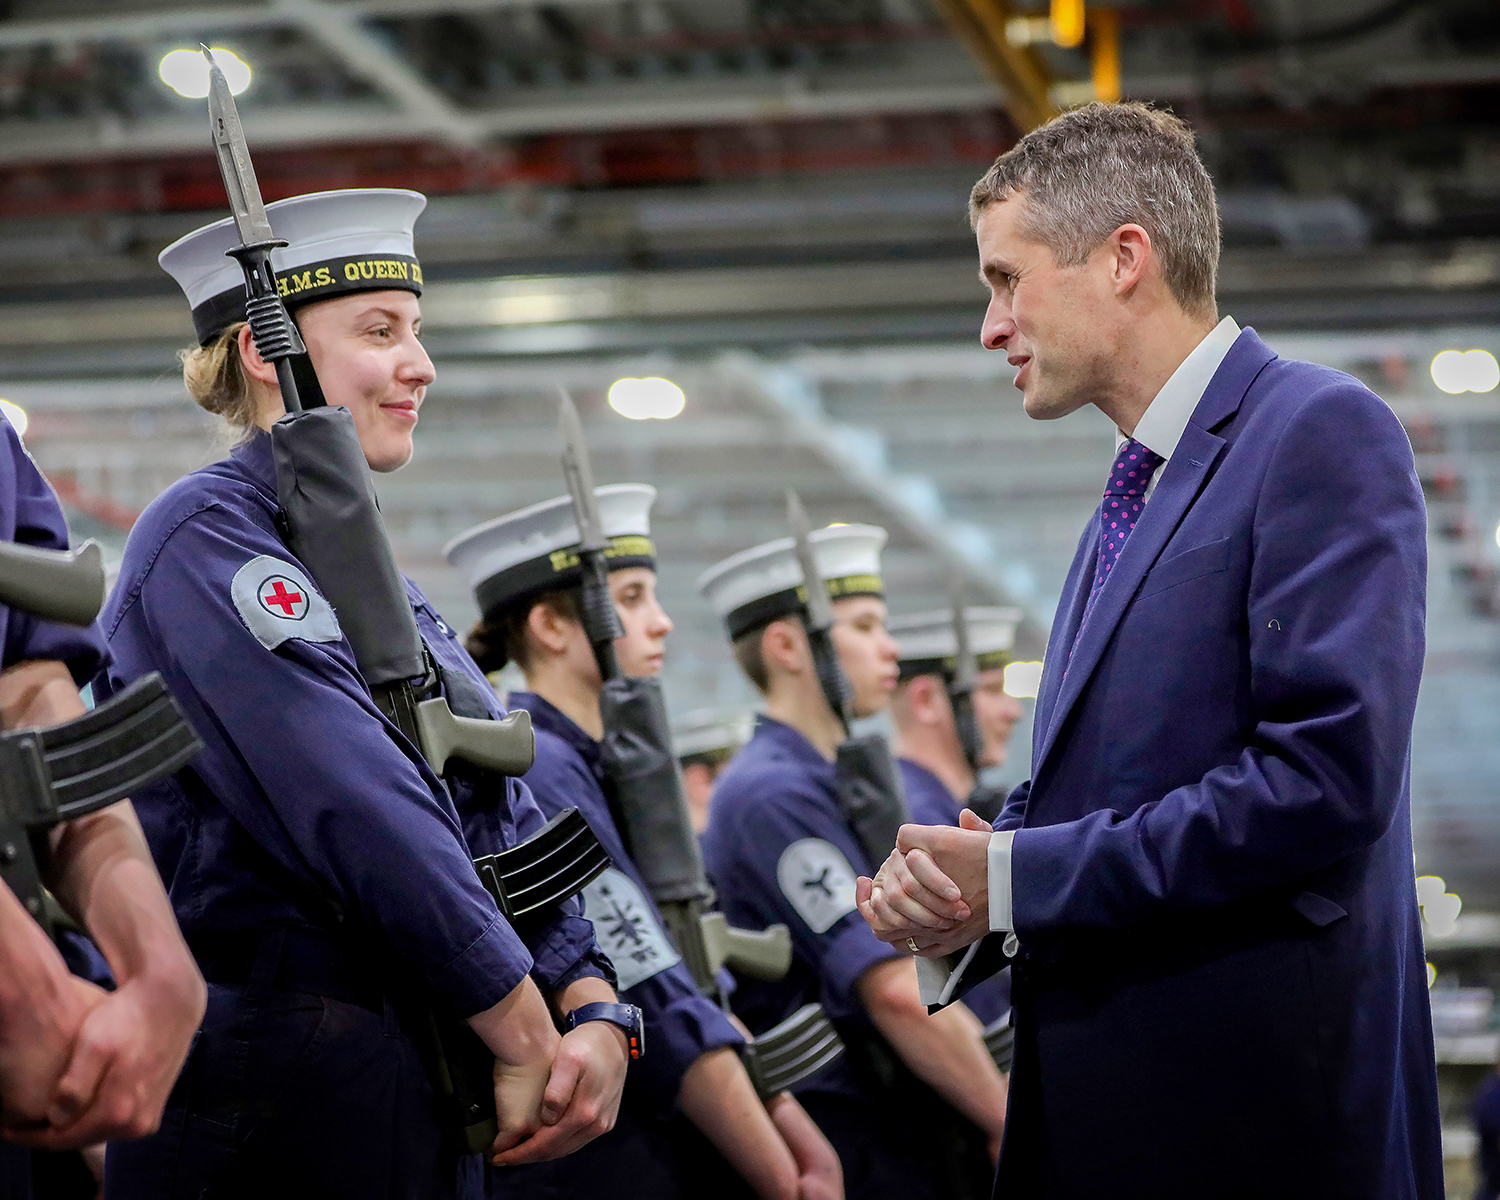 Secretary of State for Defence, Rt Hon Gavin Williamson MP, visited HMS Queen Elizabeth